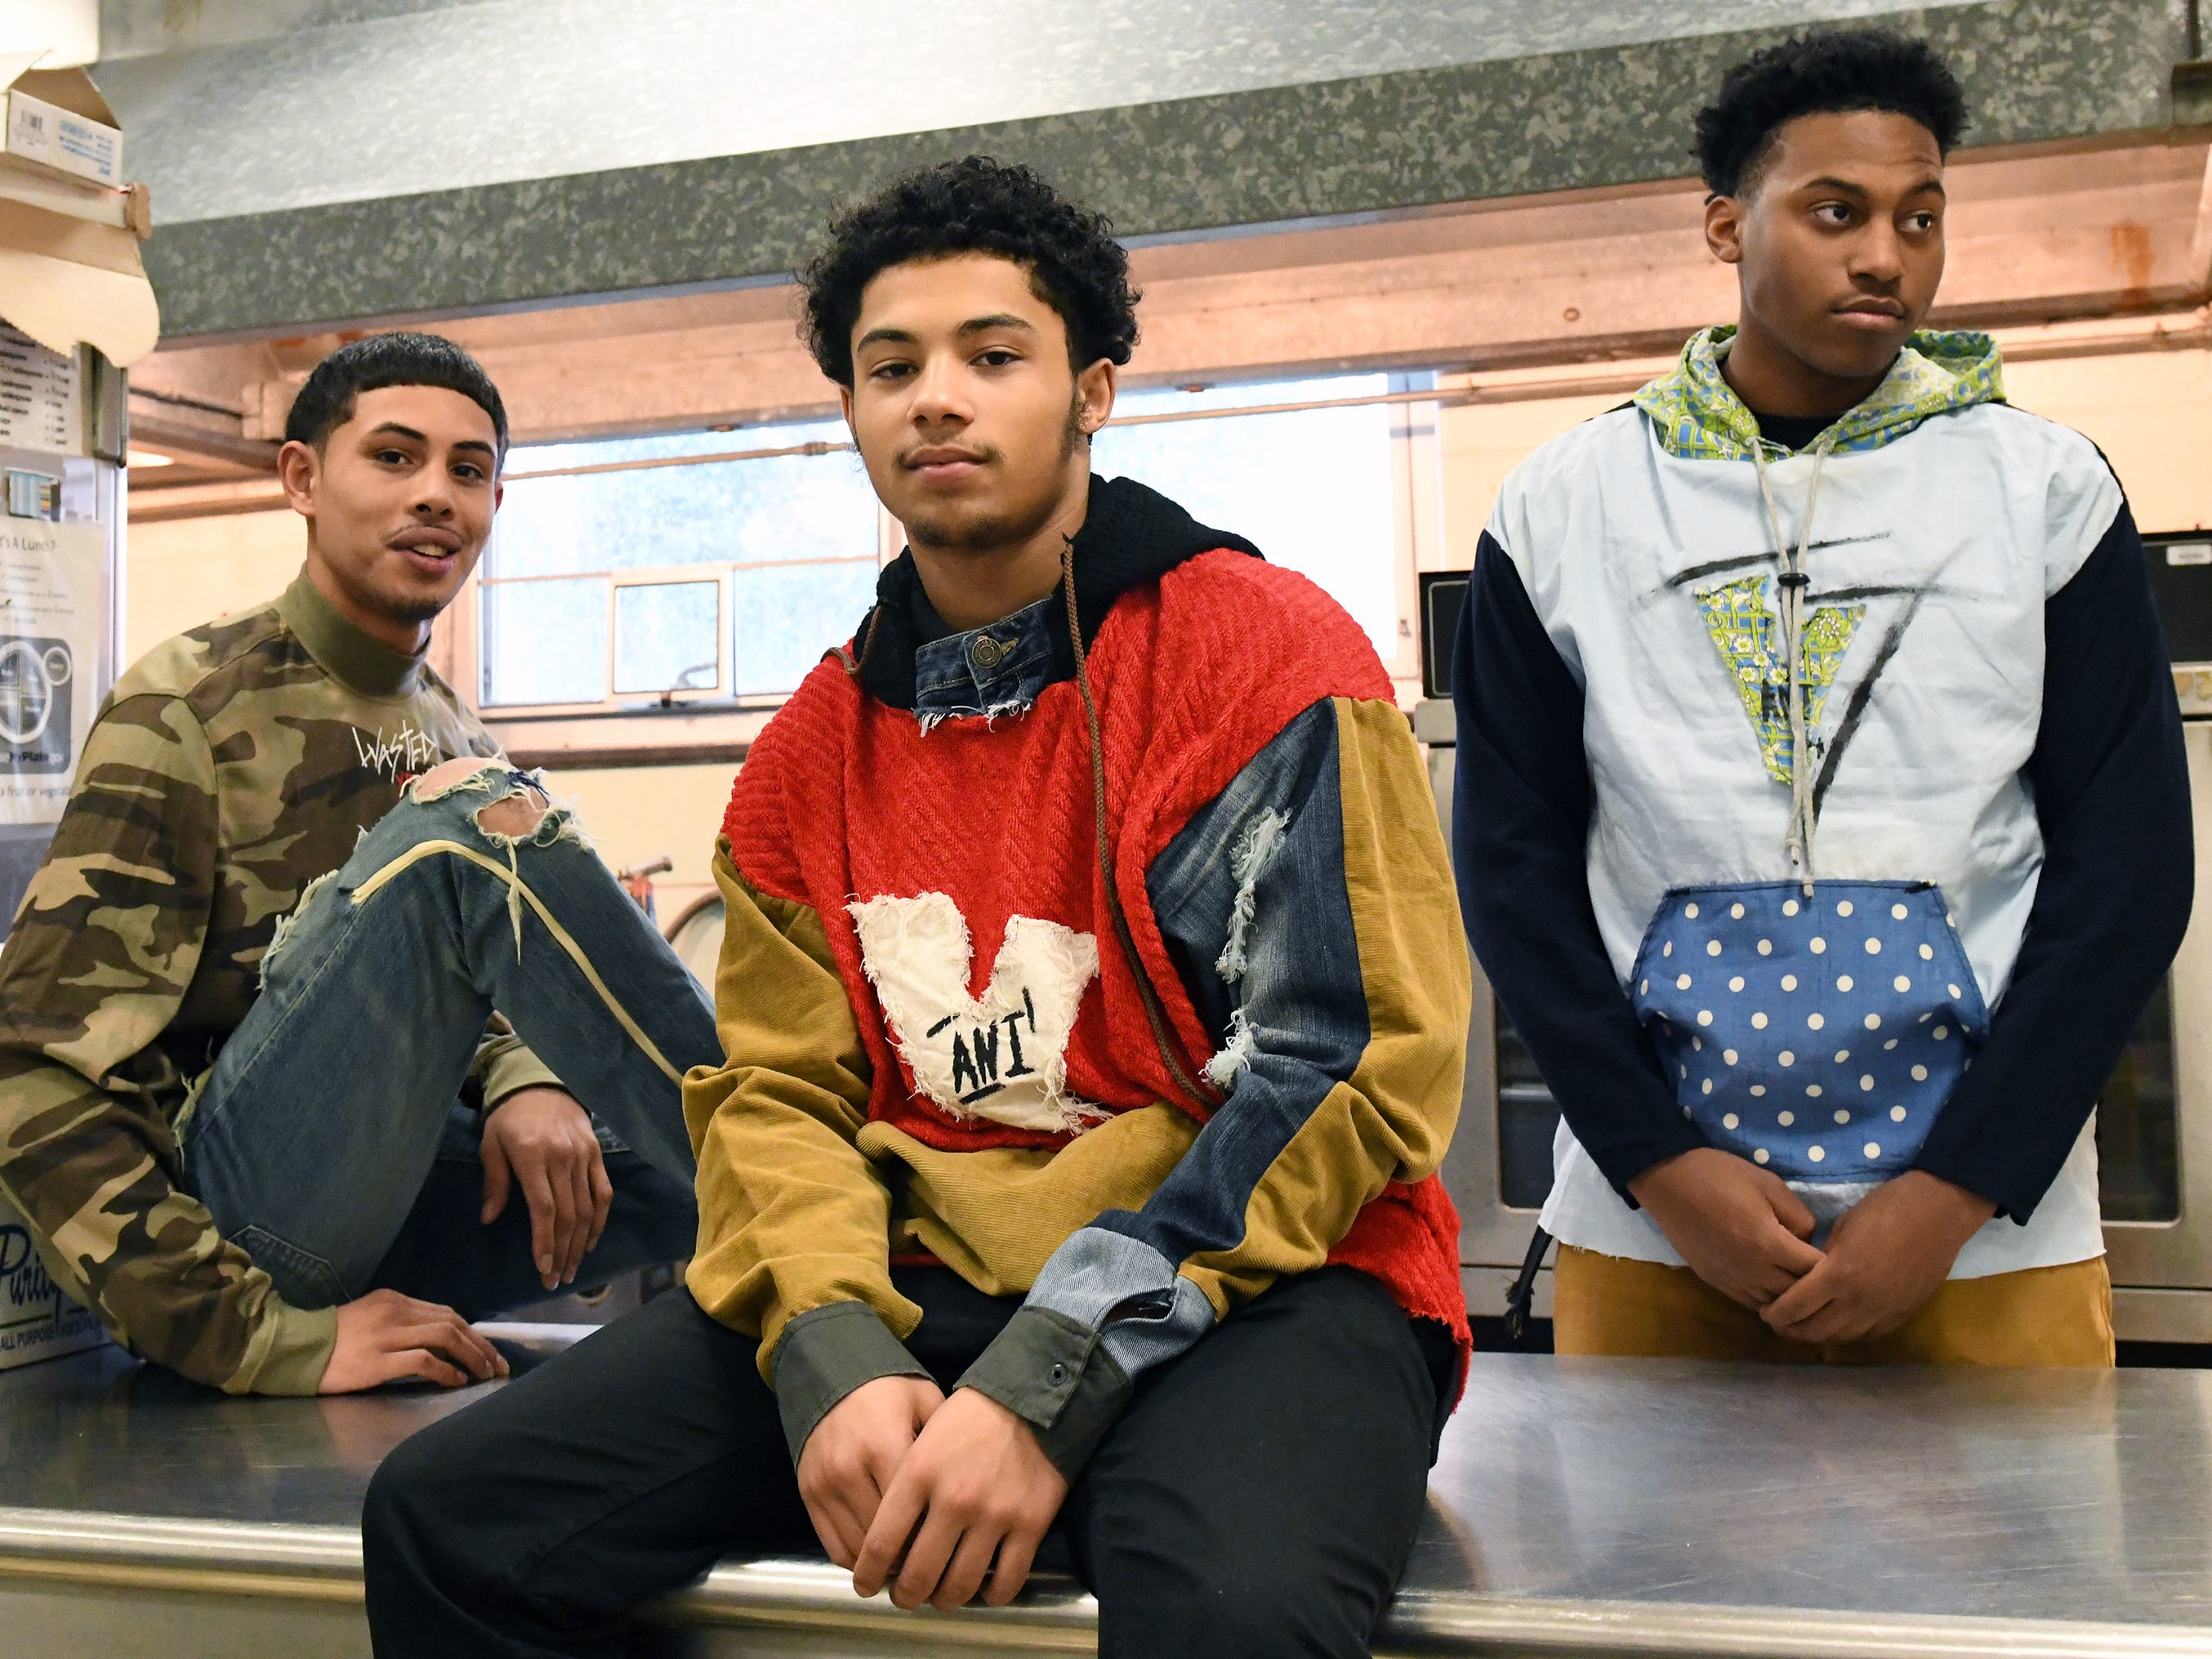 Fabricio Lobo (left) shows off some of his fashion line with his friends Zae Bogan (center) and Cameron Purnell at Cunningham Academy in Vineland on Thursday, Jan. 24, 2019